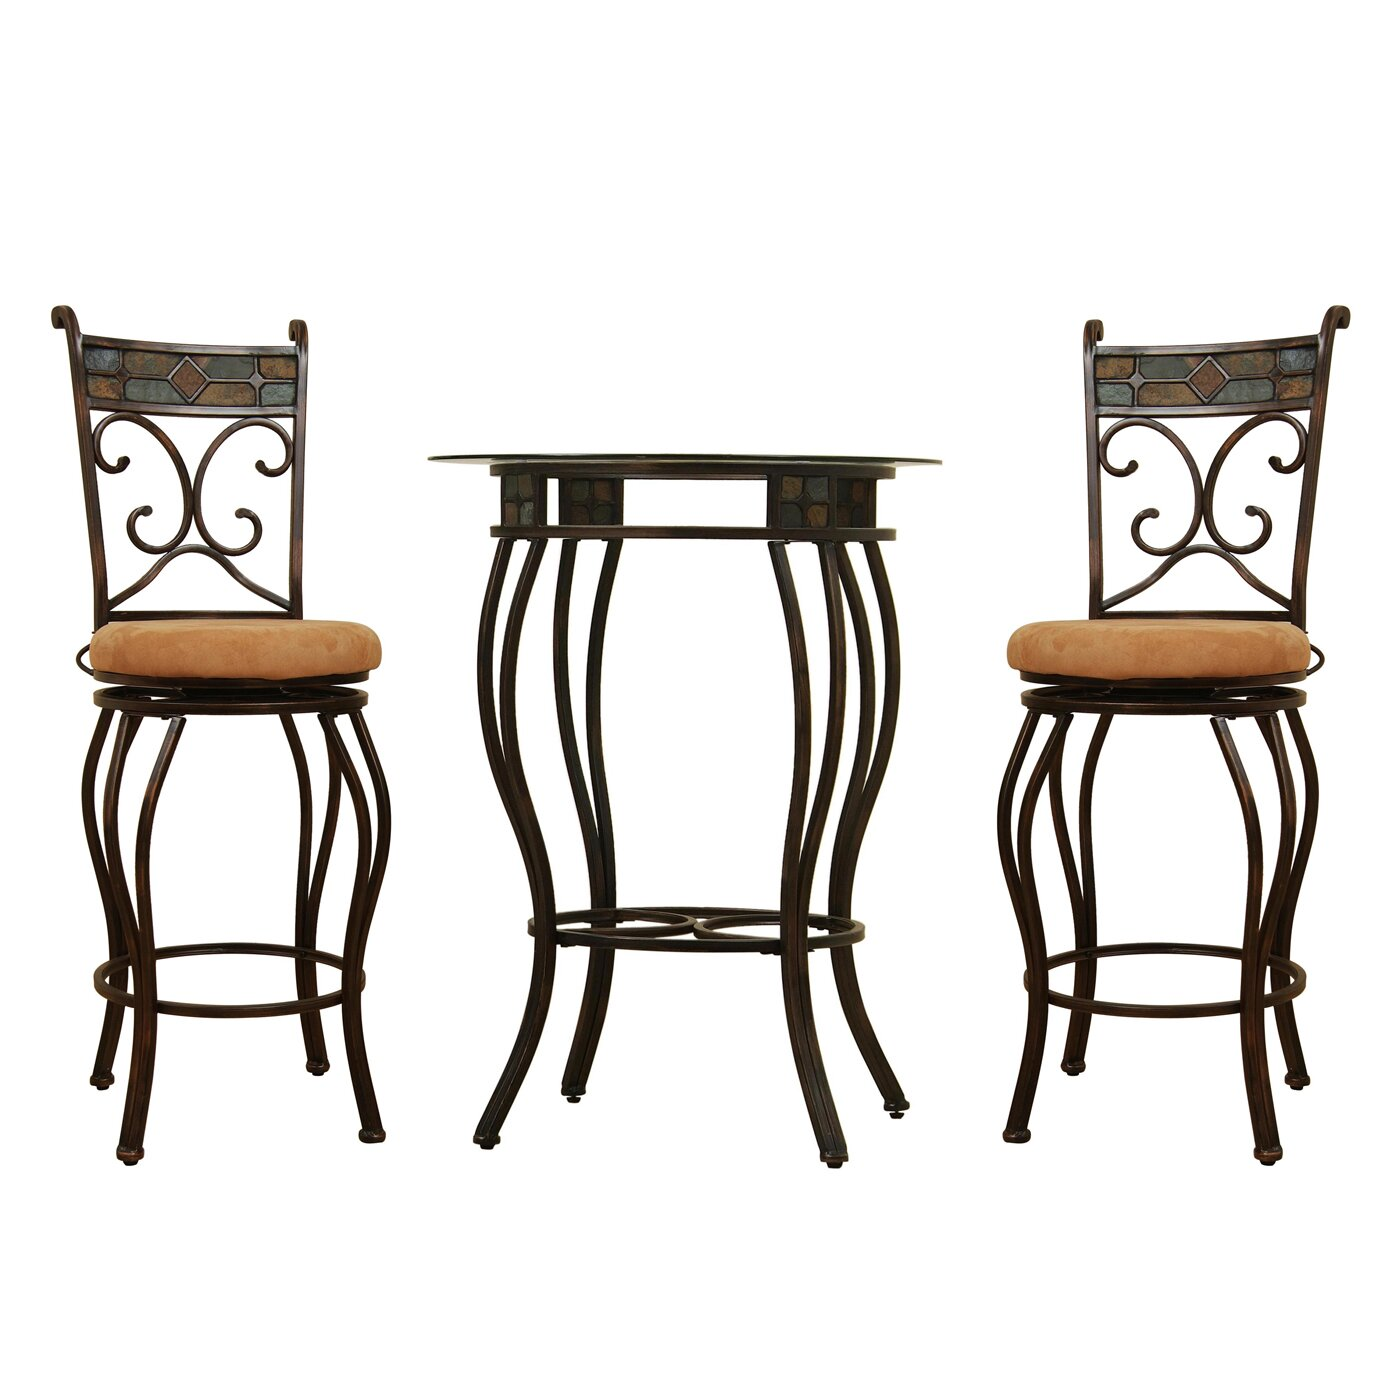 Boraam 3 Piece Beau Counter Height Pub Table Set amp Reviews  : ThreePieceBeauMetalPubSetinBlackandGold from www.wayfair.com size 1400 x 1400 jpeg 209kB